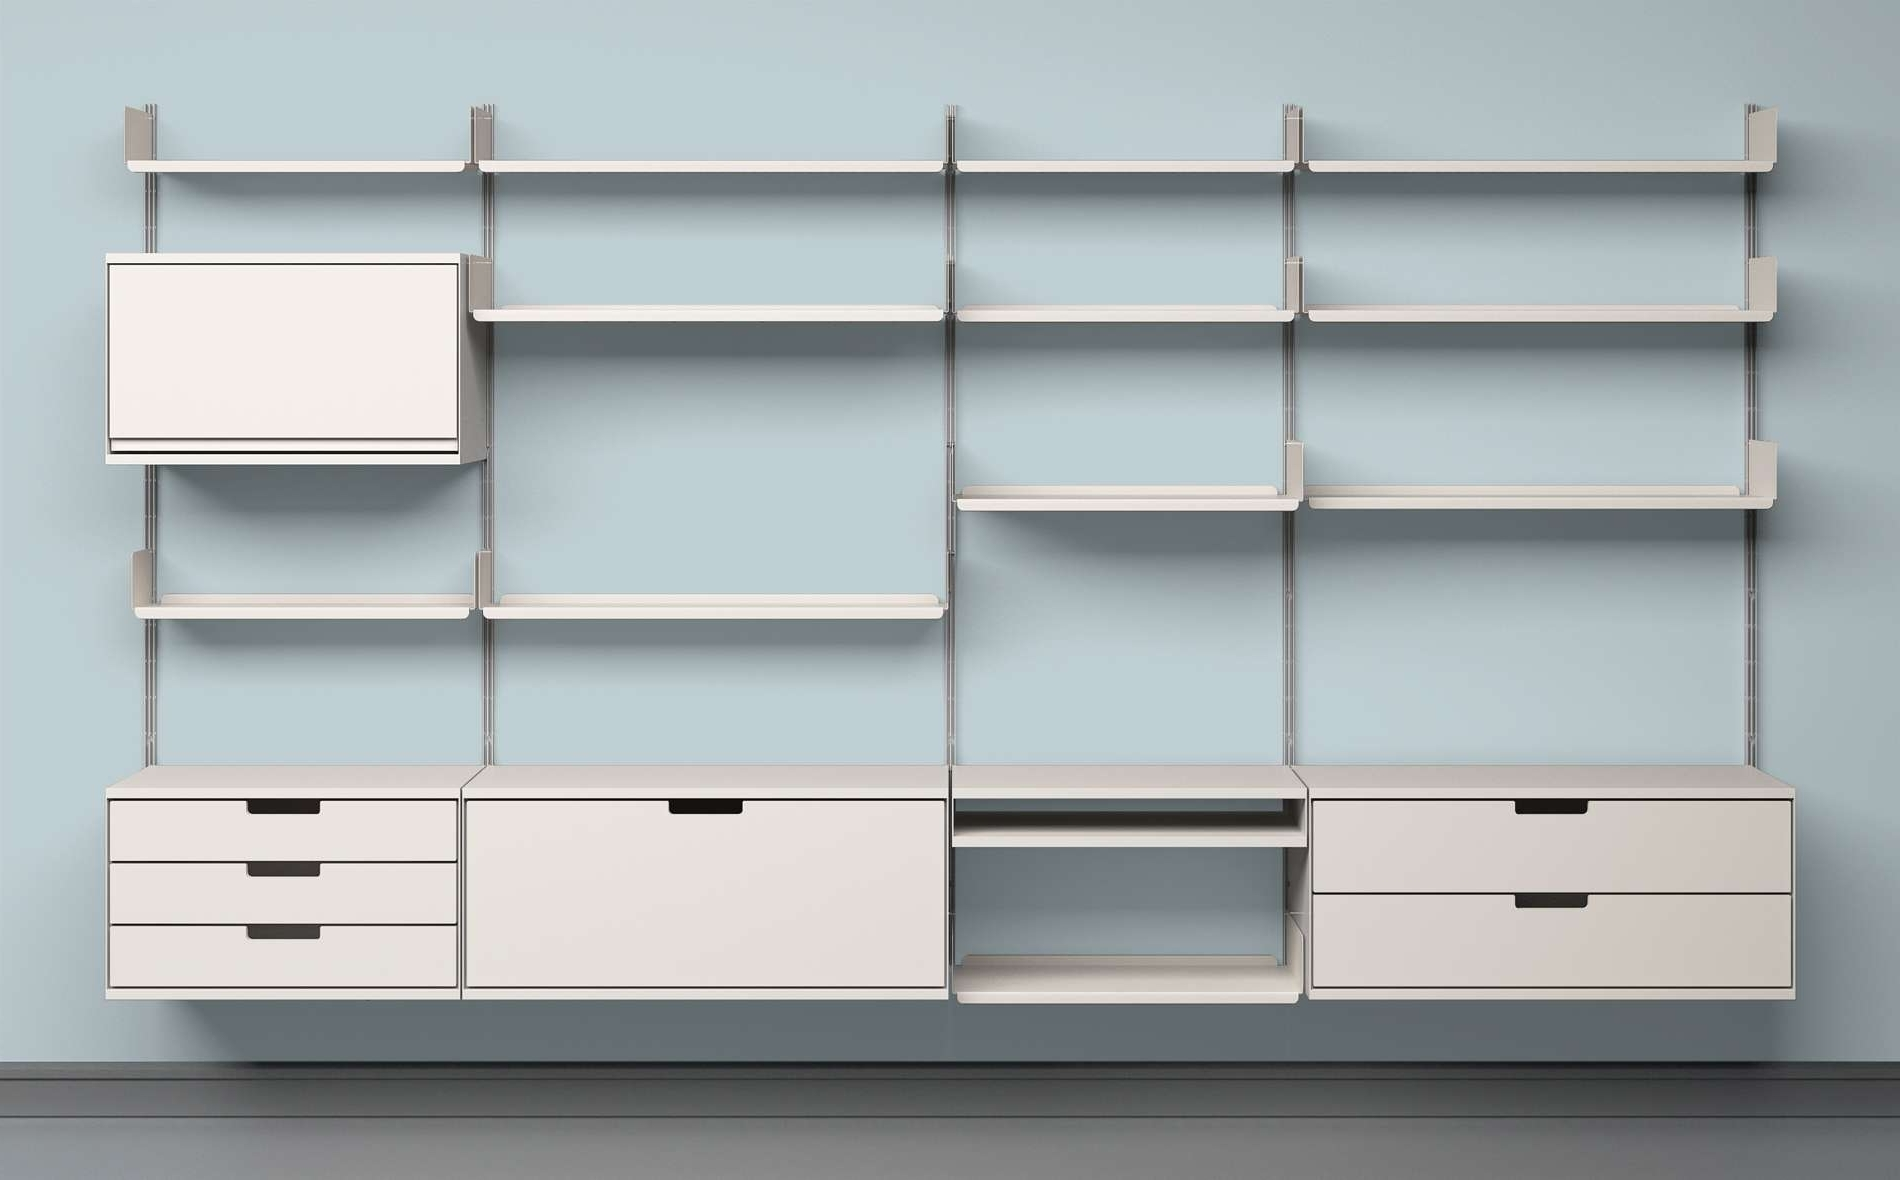 Fashionable Modular Shelving Systems – Home Design And Decor In Home Shelving Systems (View 2 of 15)